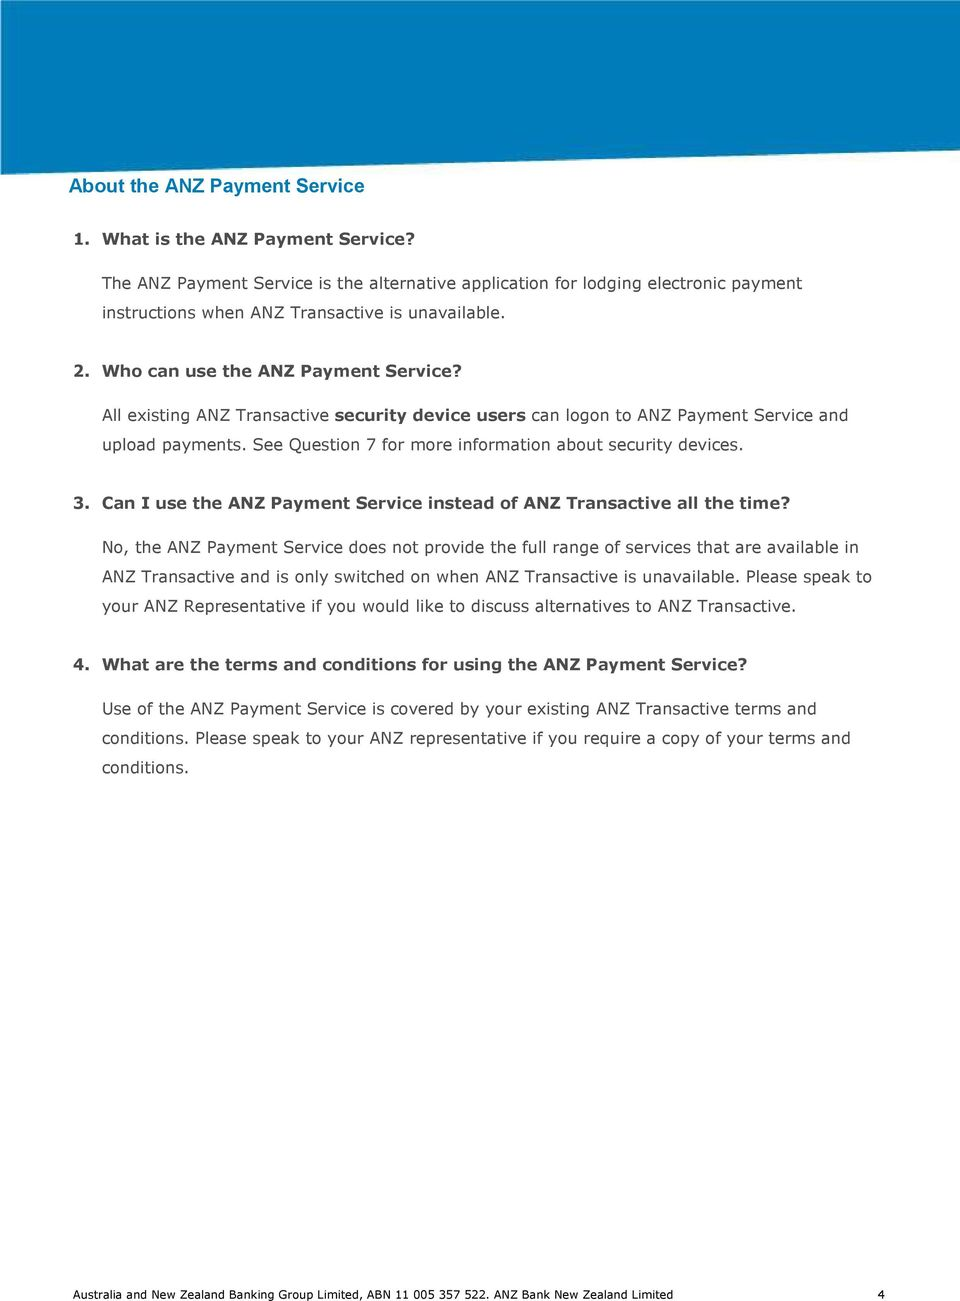 All existing ANZ Transactive security device users can logon to ANZ Payment Service and upload payments. See Question 7 for more information about security devices. 3.